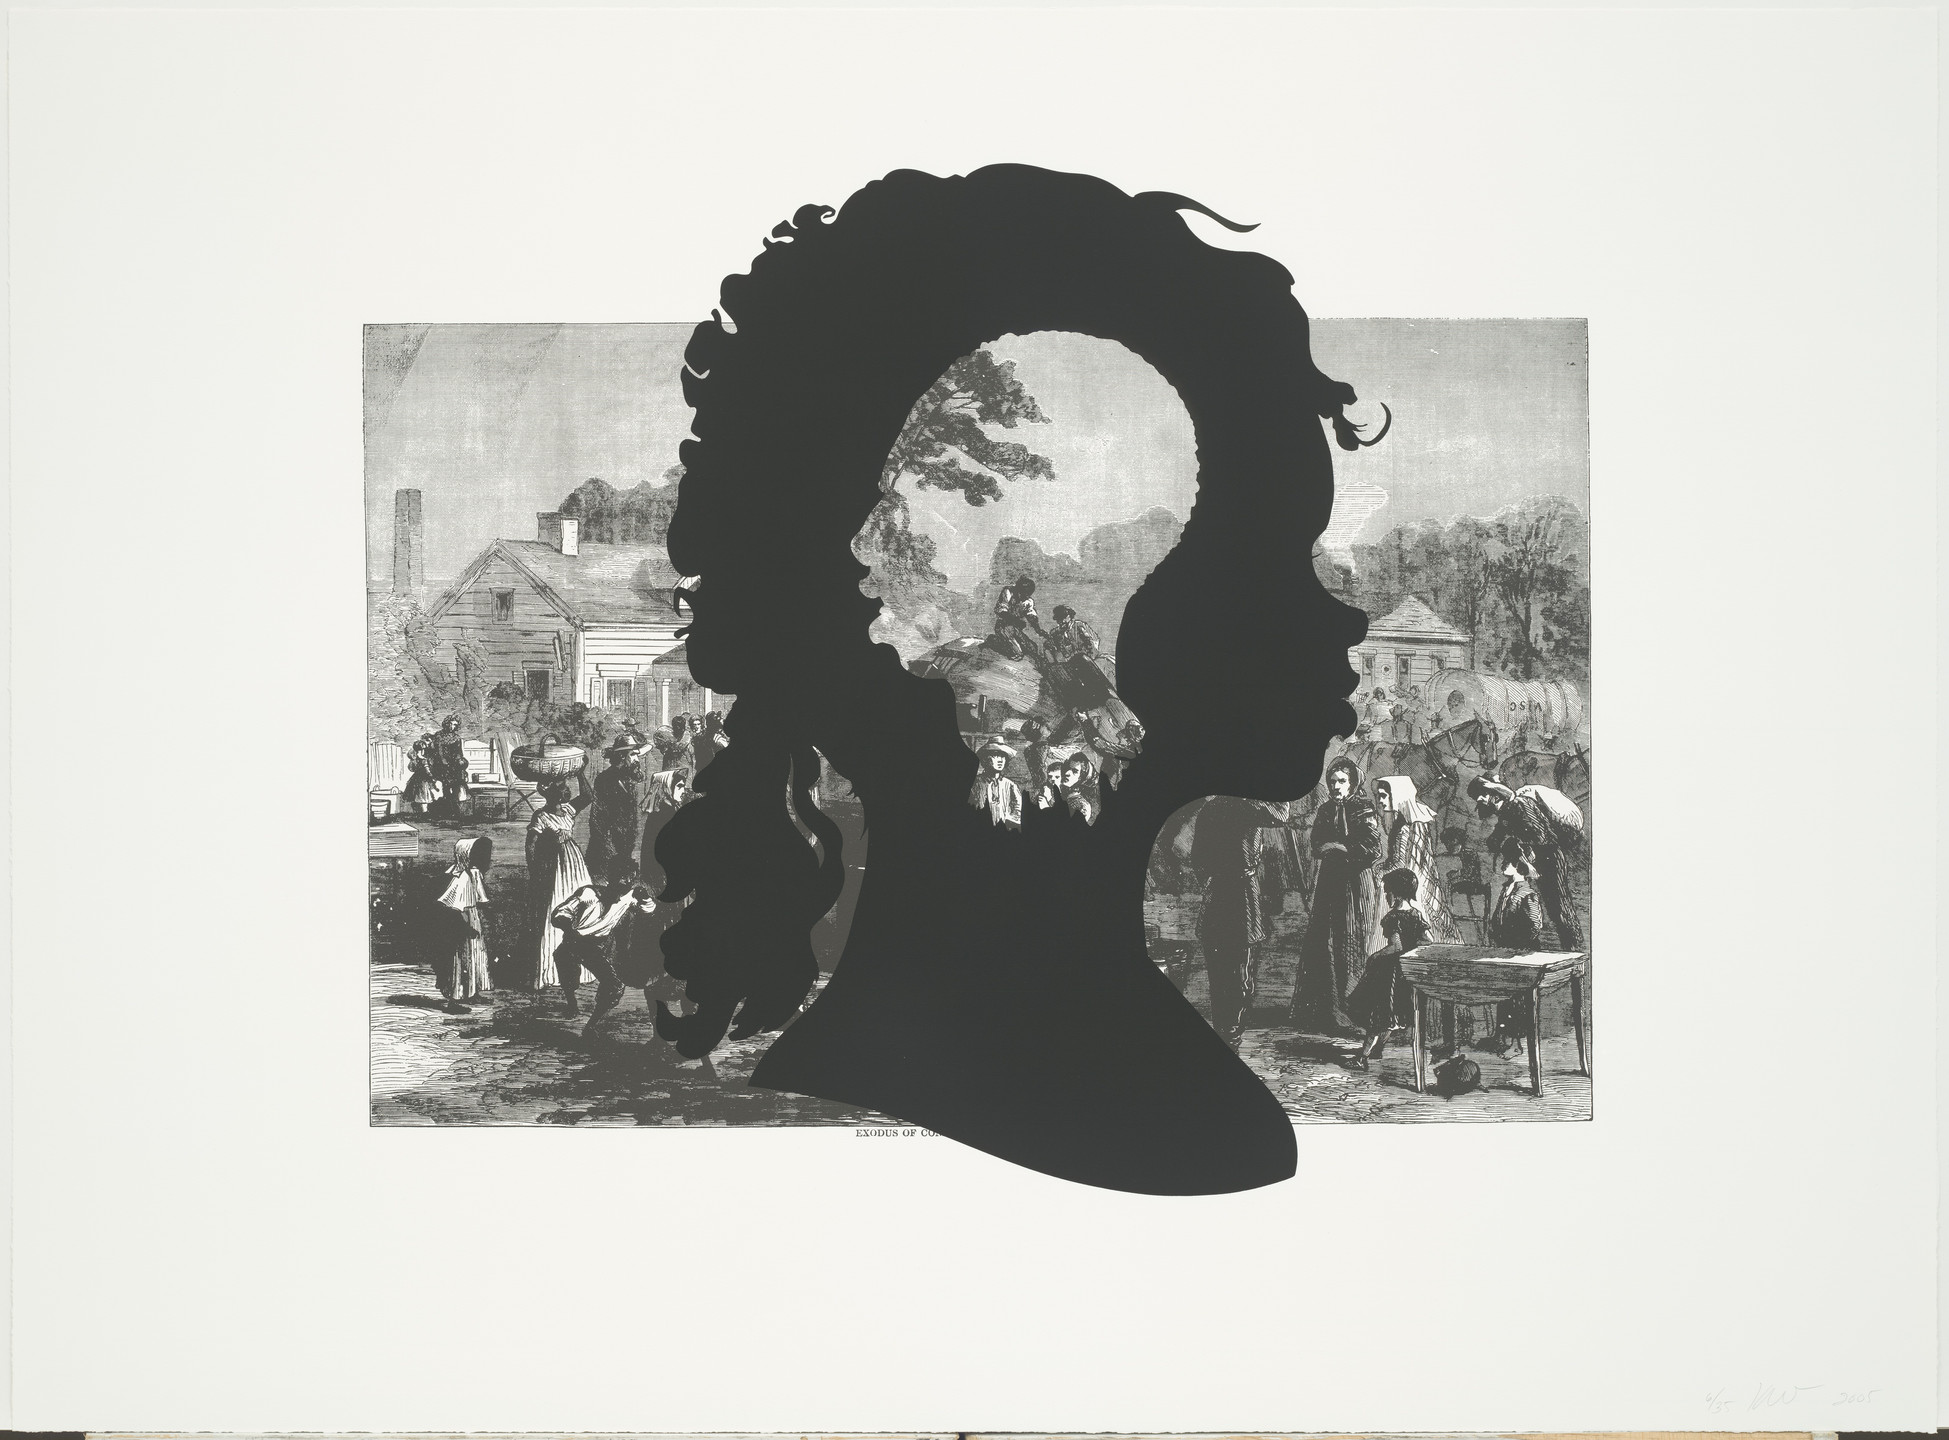 Kara Walker. Exodus of Confederates from Atlanta from Harper's Pictorial History of the Civil War (Annotated). 2005